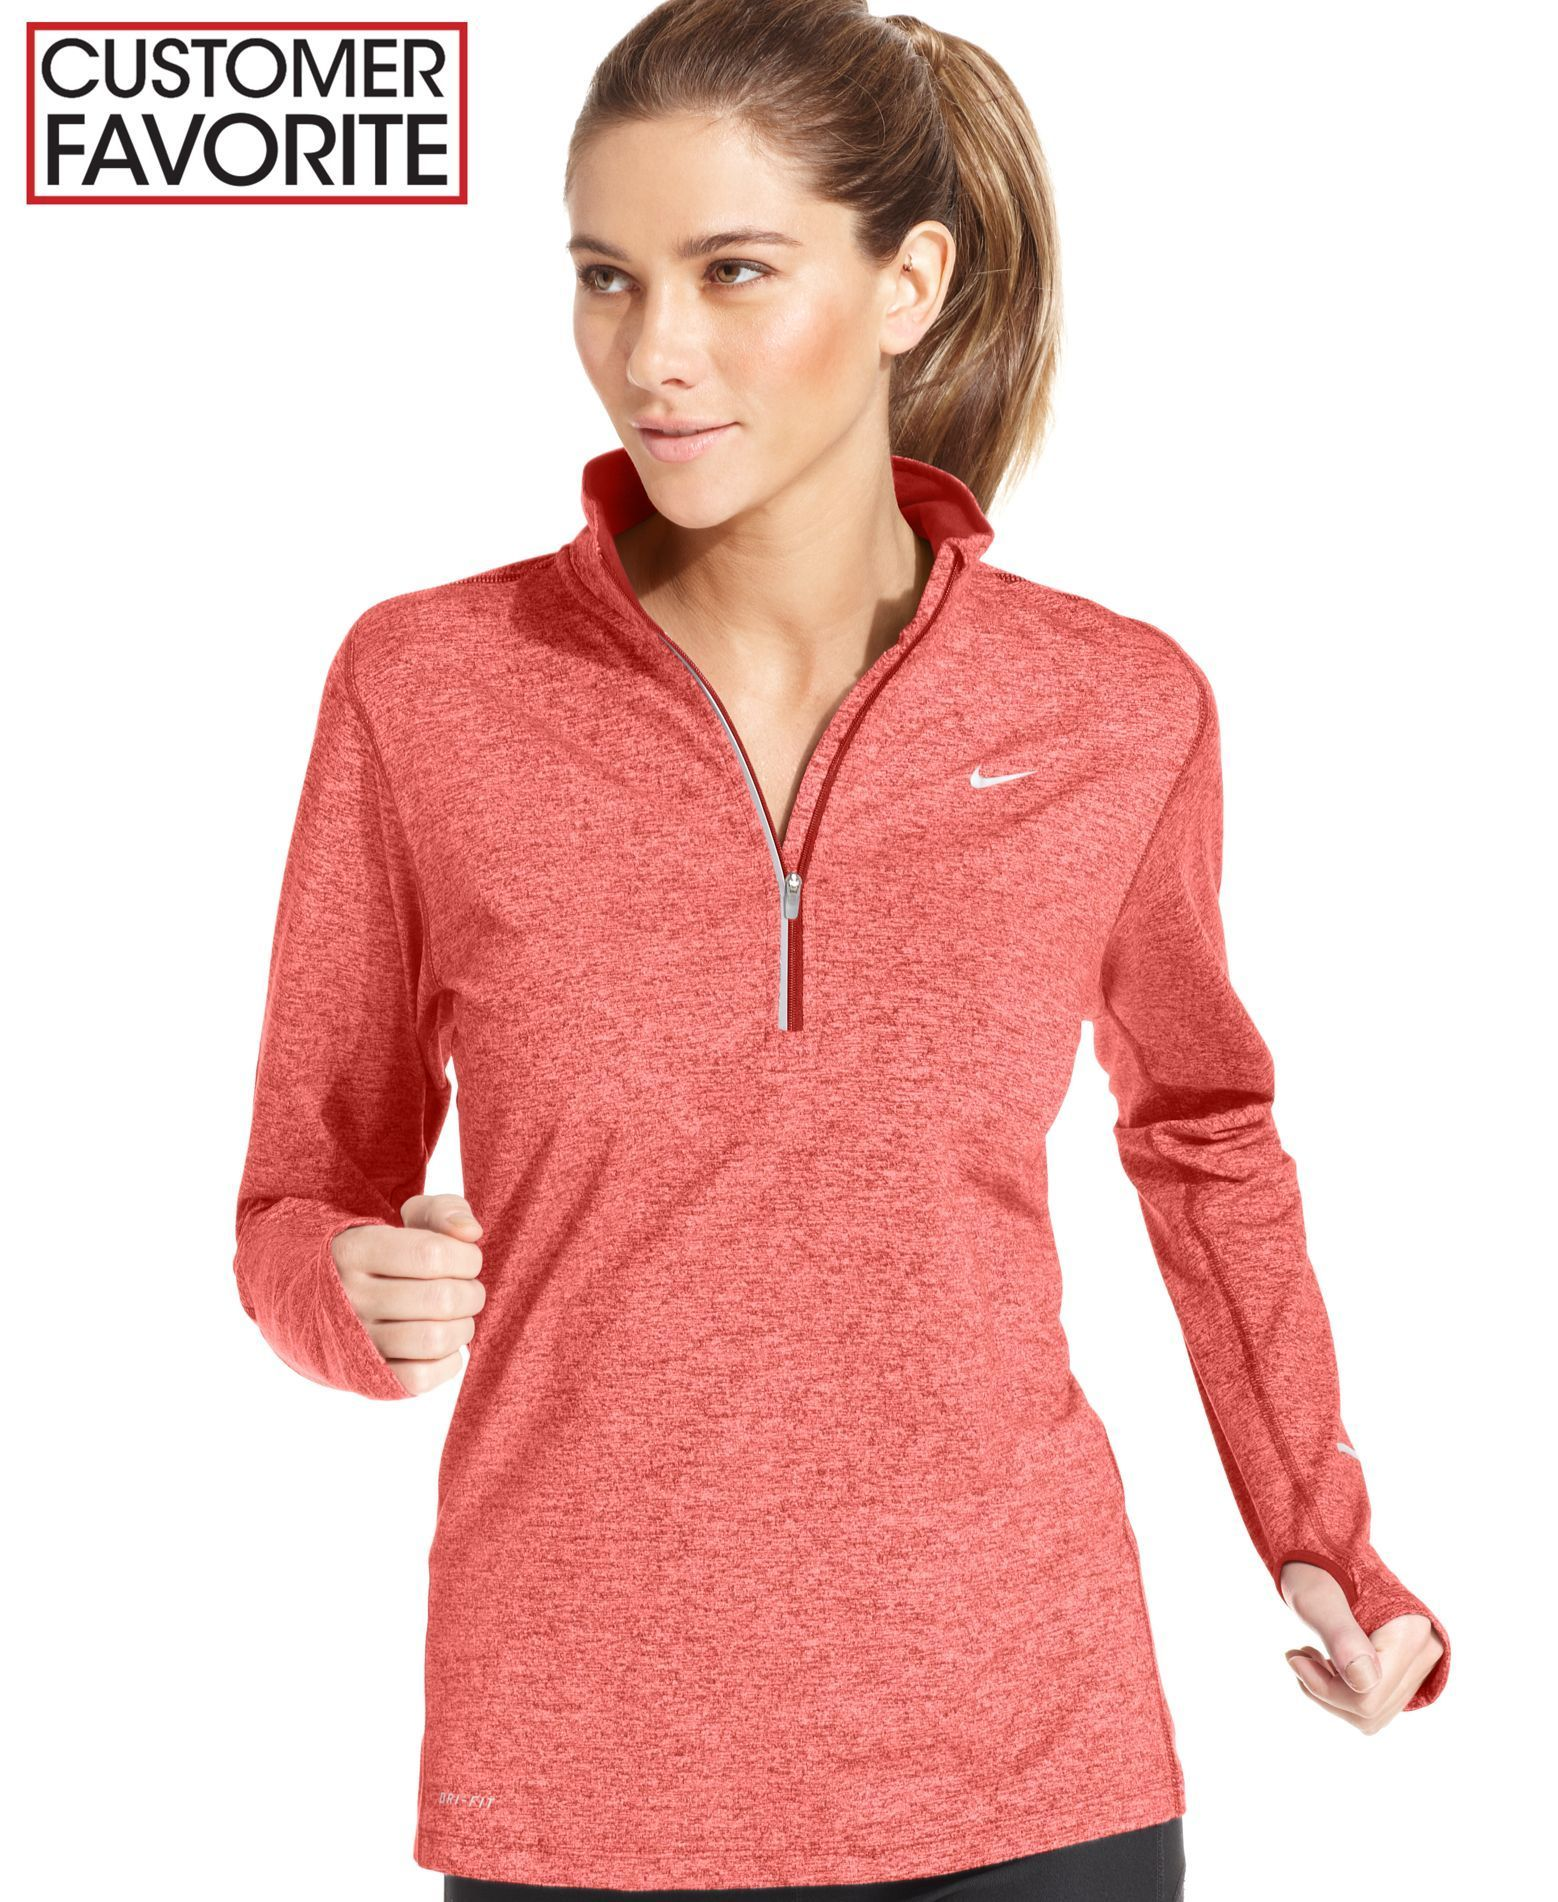 c41f1f4c4a0423 Nike s Element pullover works for your workout! With Dri-fit technology and  reflective piping